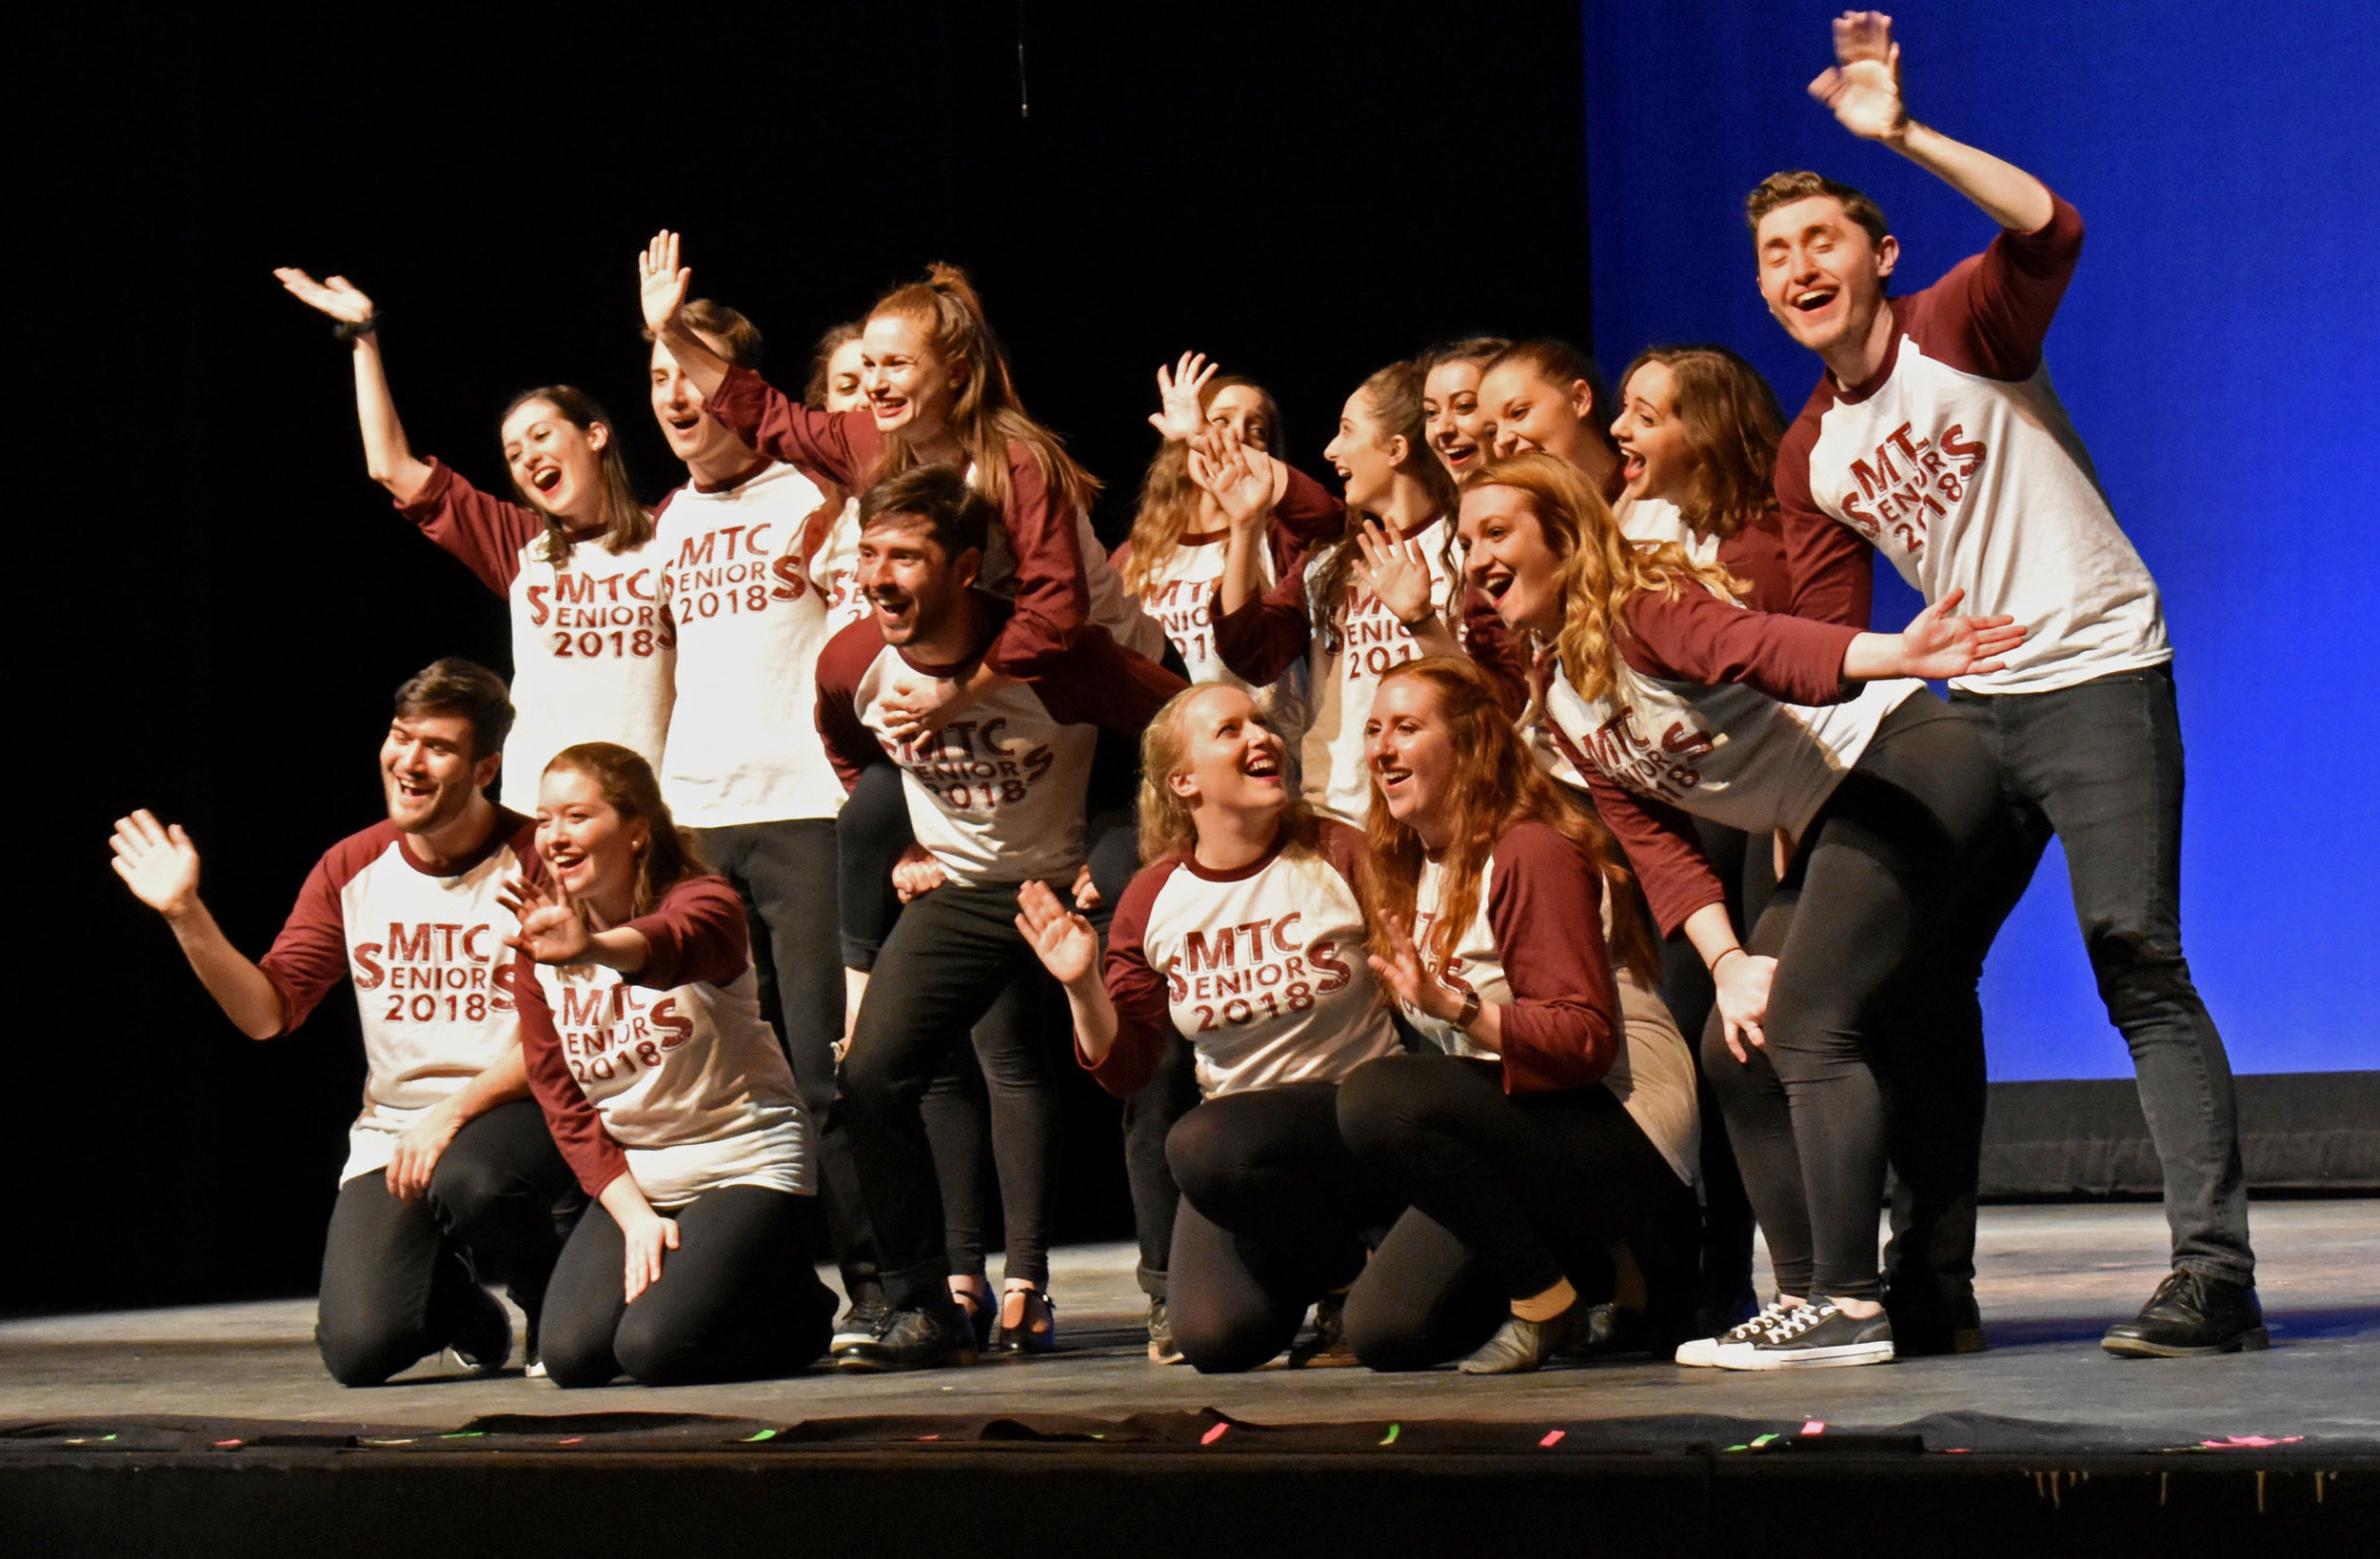 """The Musical Theater Club presented their show, """"Live from New York , it's MTC!"""" on Saturday March 24 in the Alice Austin Theater. The show was a combination of short comedy routines and modified cover songs that tailored to MTC. Pictured above are the MTC seniors. (Izzy Graziano/Knights' Life Editor"""